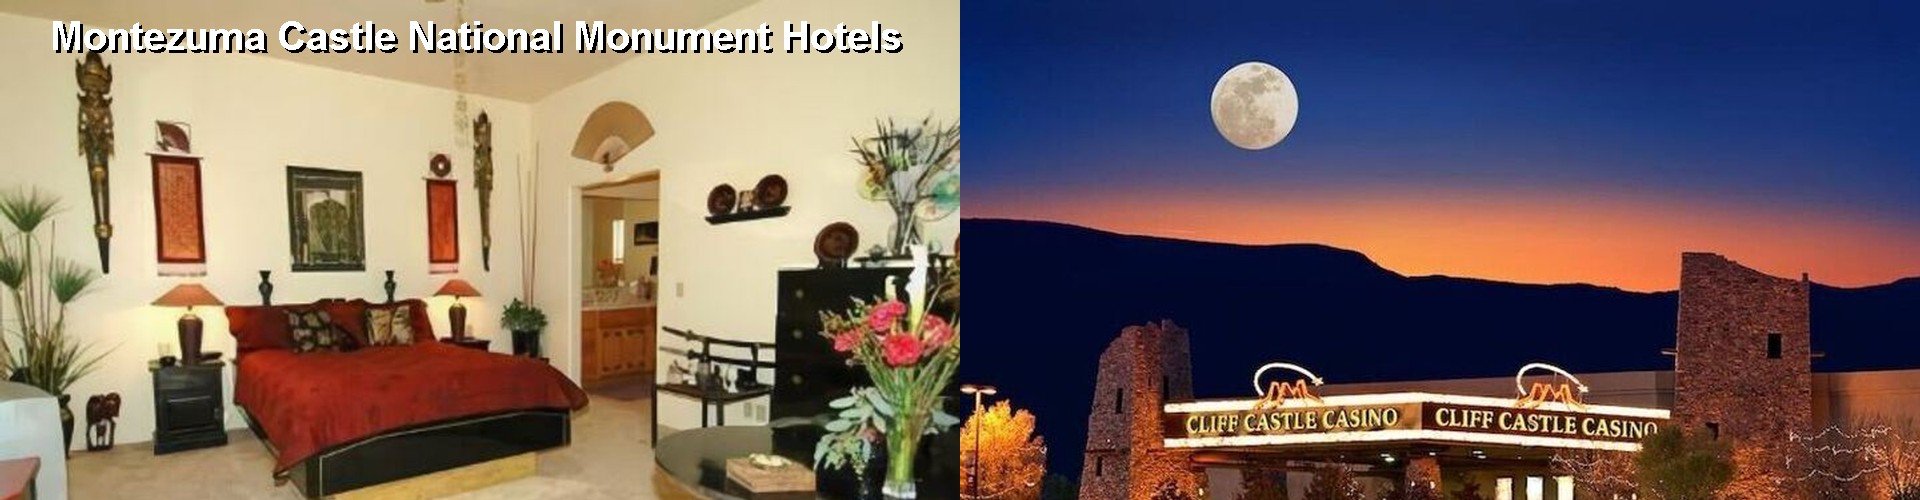 5 Best Hotels near Montezuma Castle National Monument